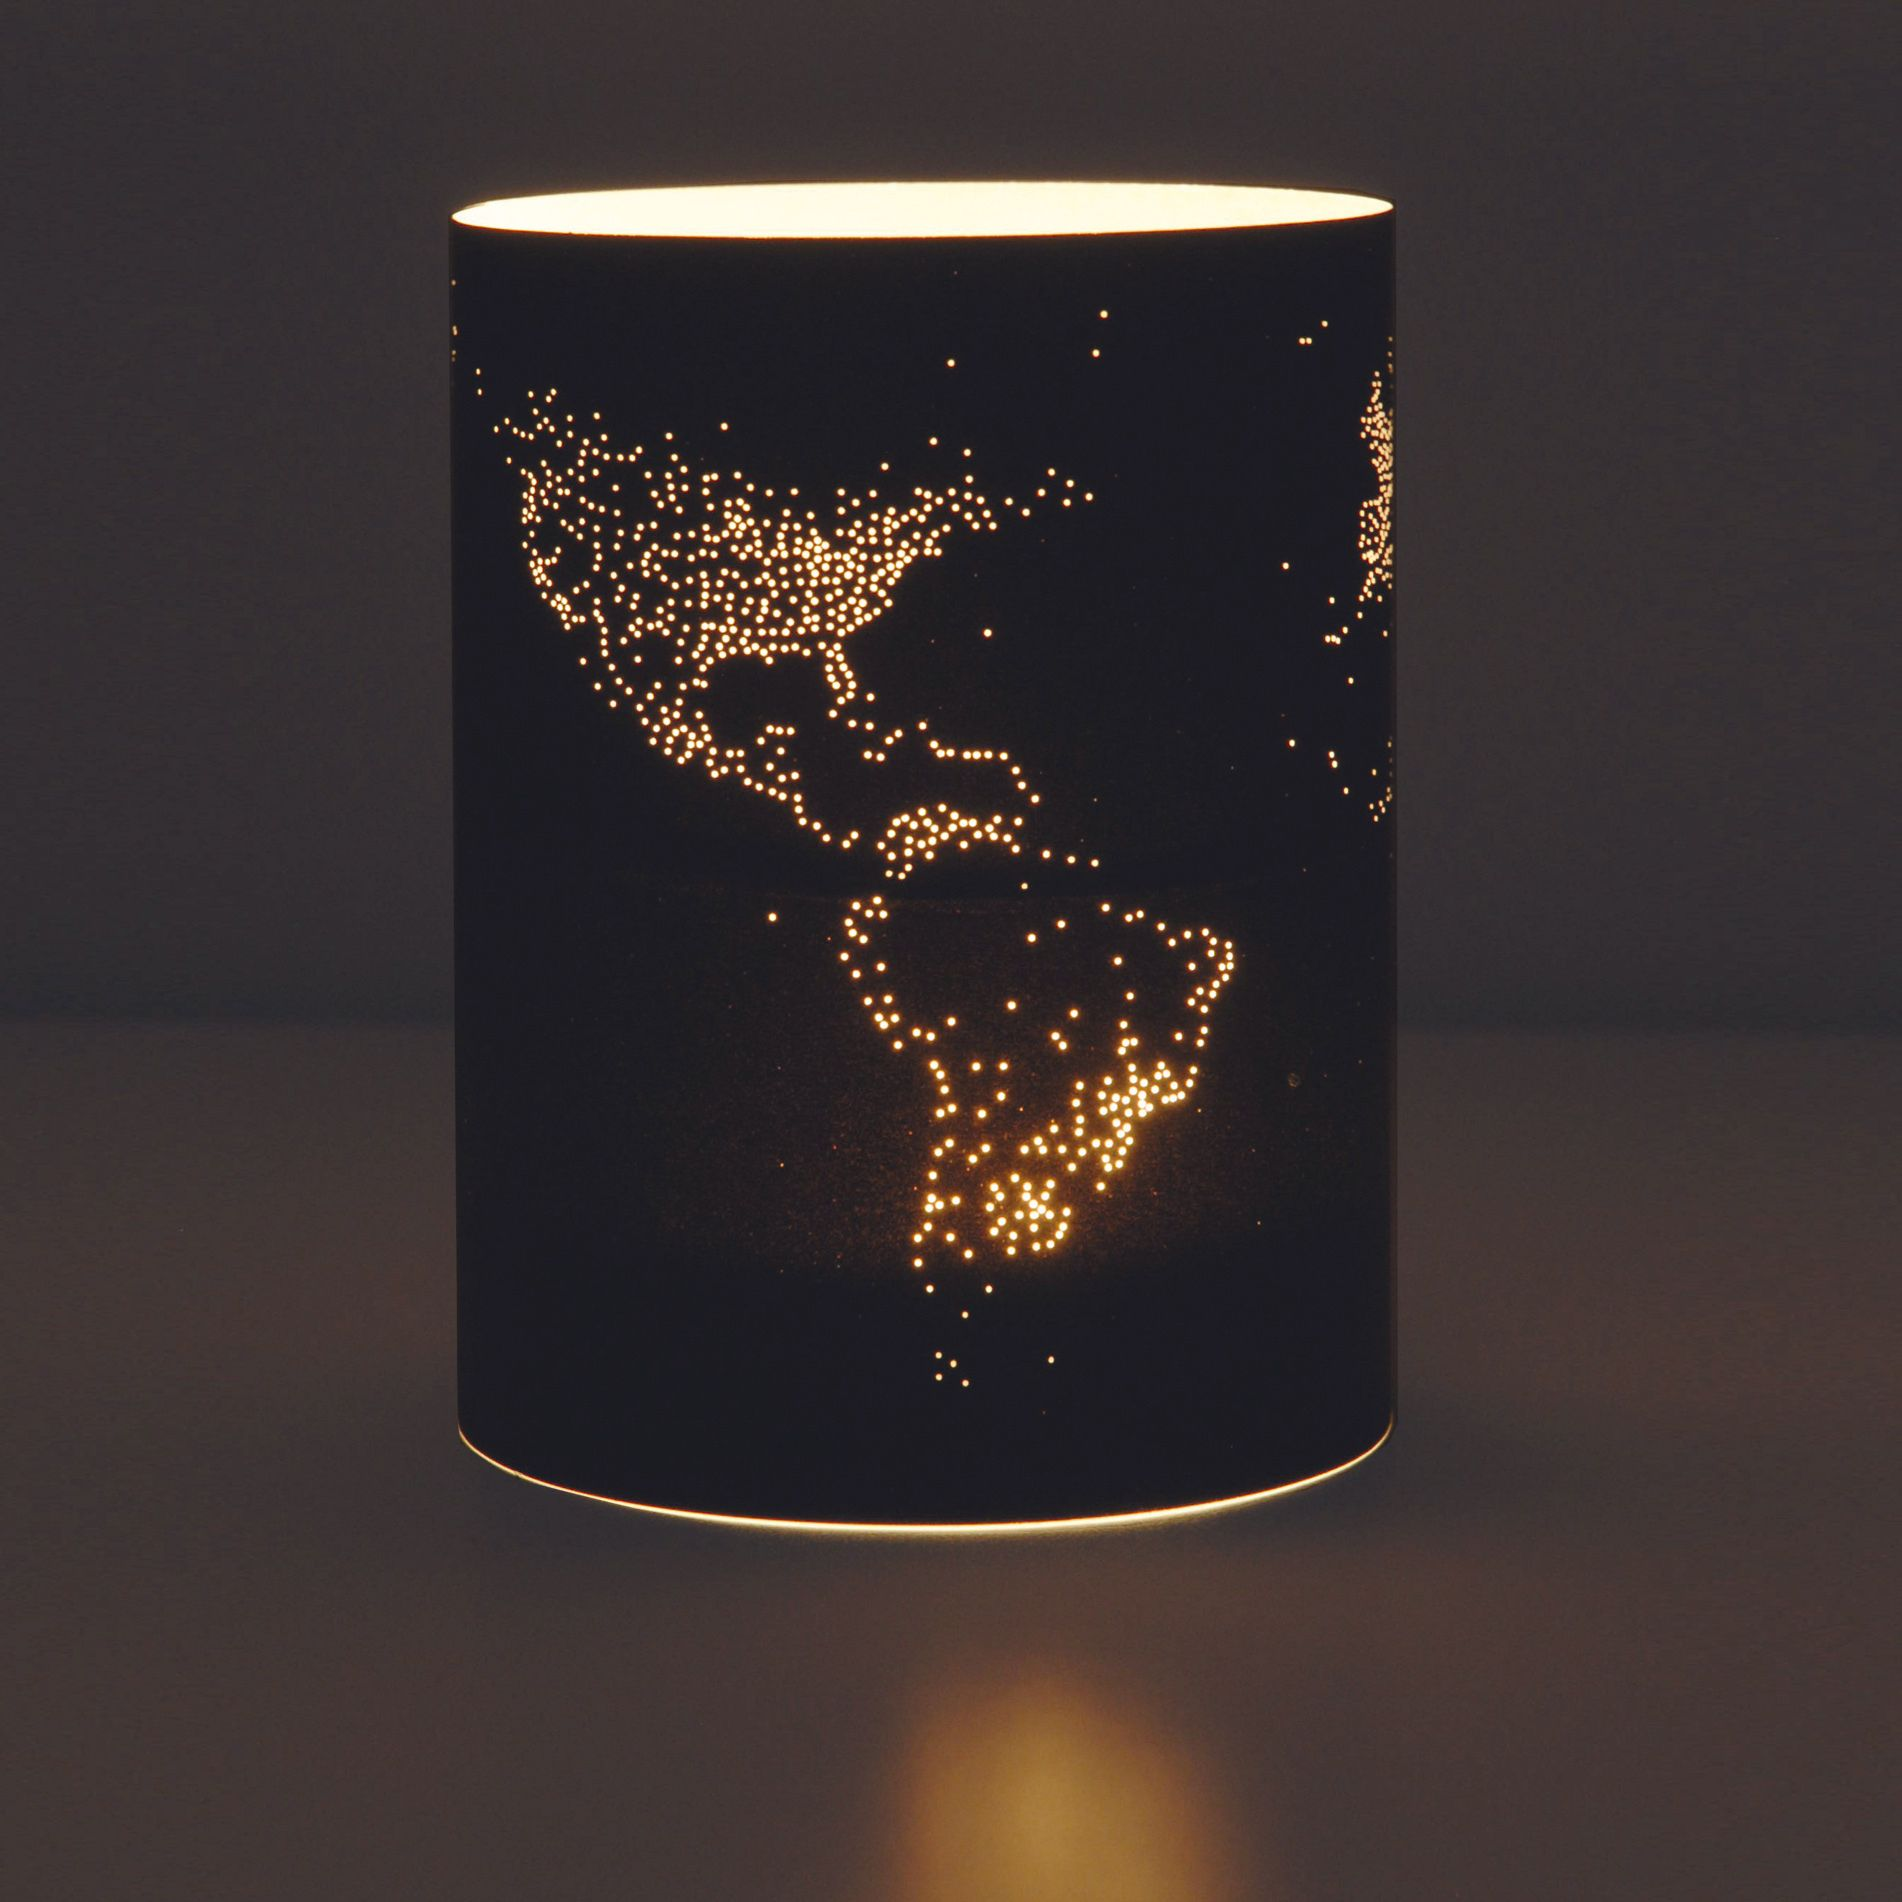 Craft paper lamp shades - Lights Of Earth Pin Holes In Paper Taped Then Placed Around A Tea Light Candle Would Be Awesome With A Thin Sheet Of Aluminum Or Copper